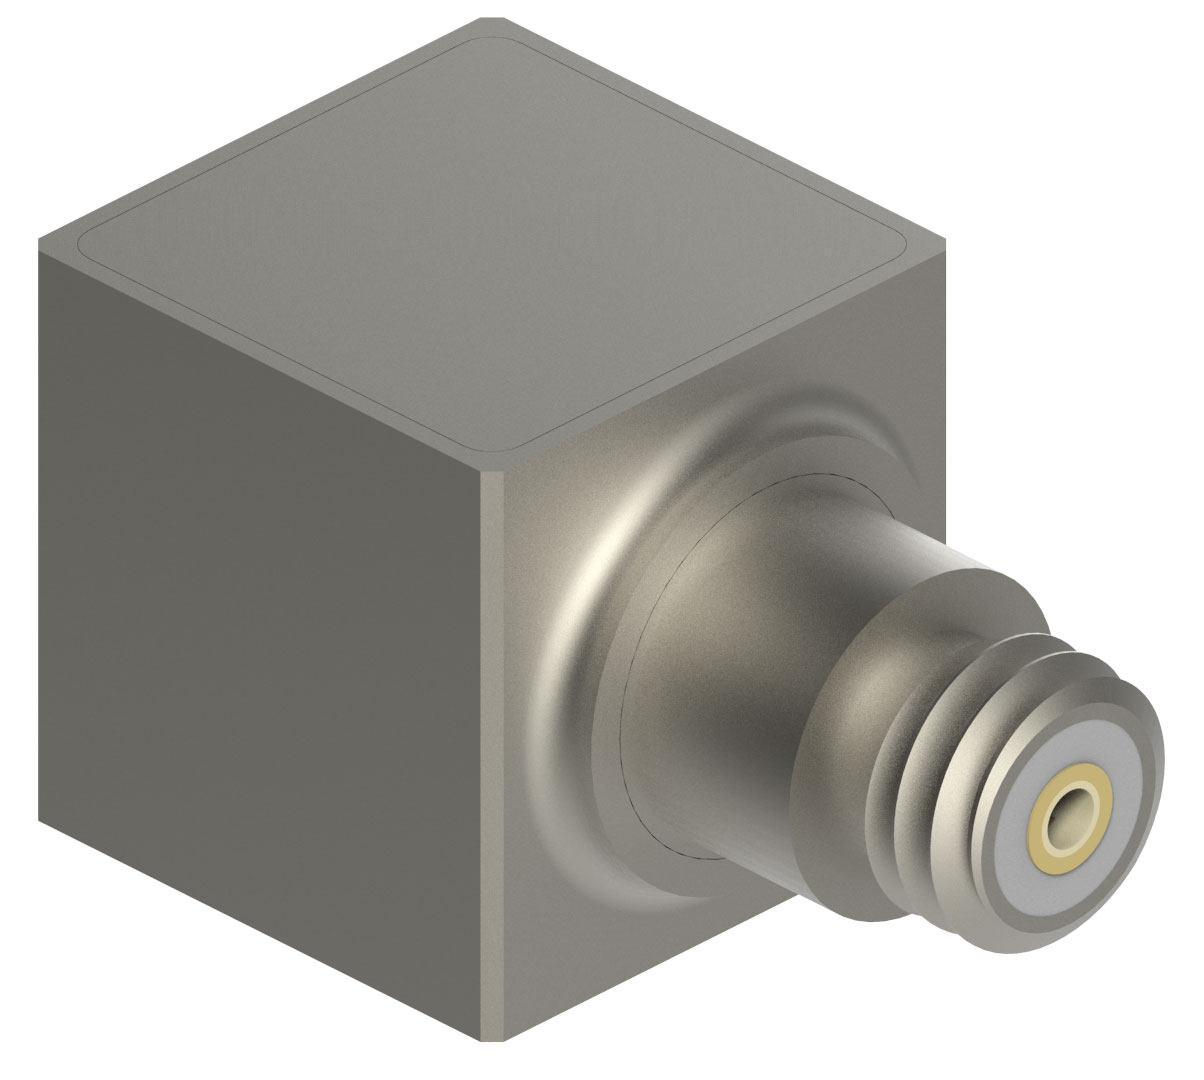 Cubic Accelerometers suit modal analysis applications.